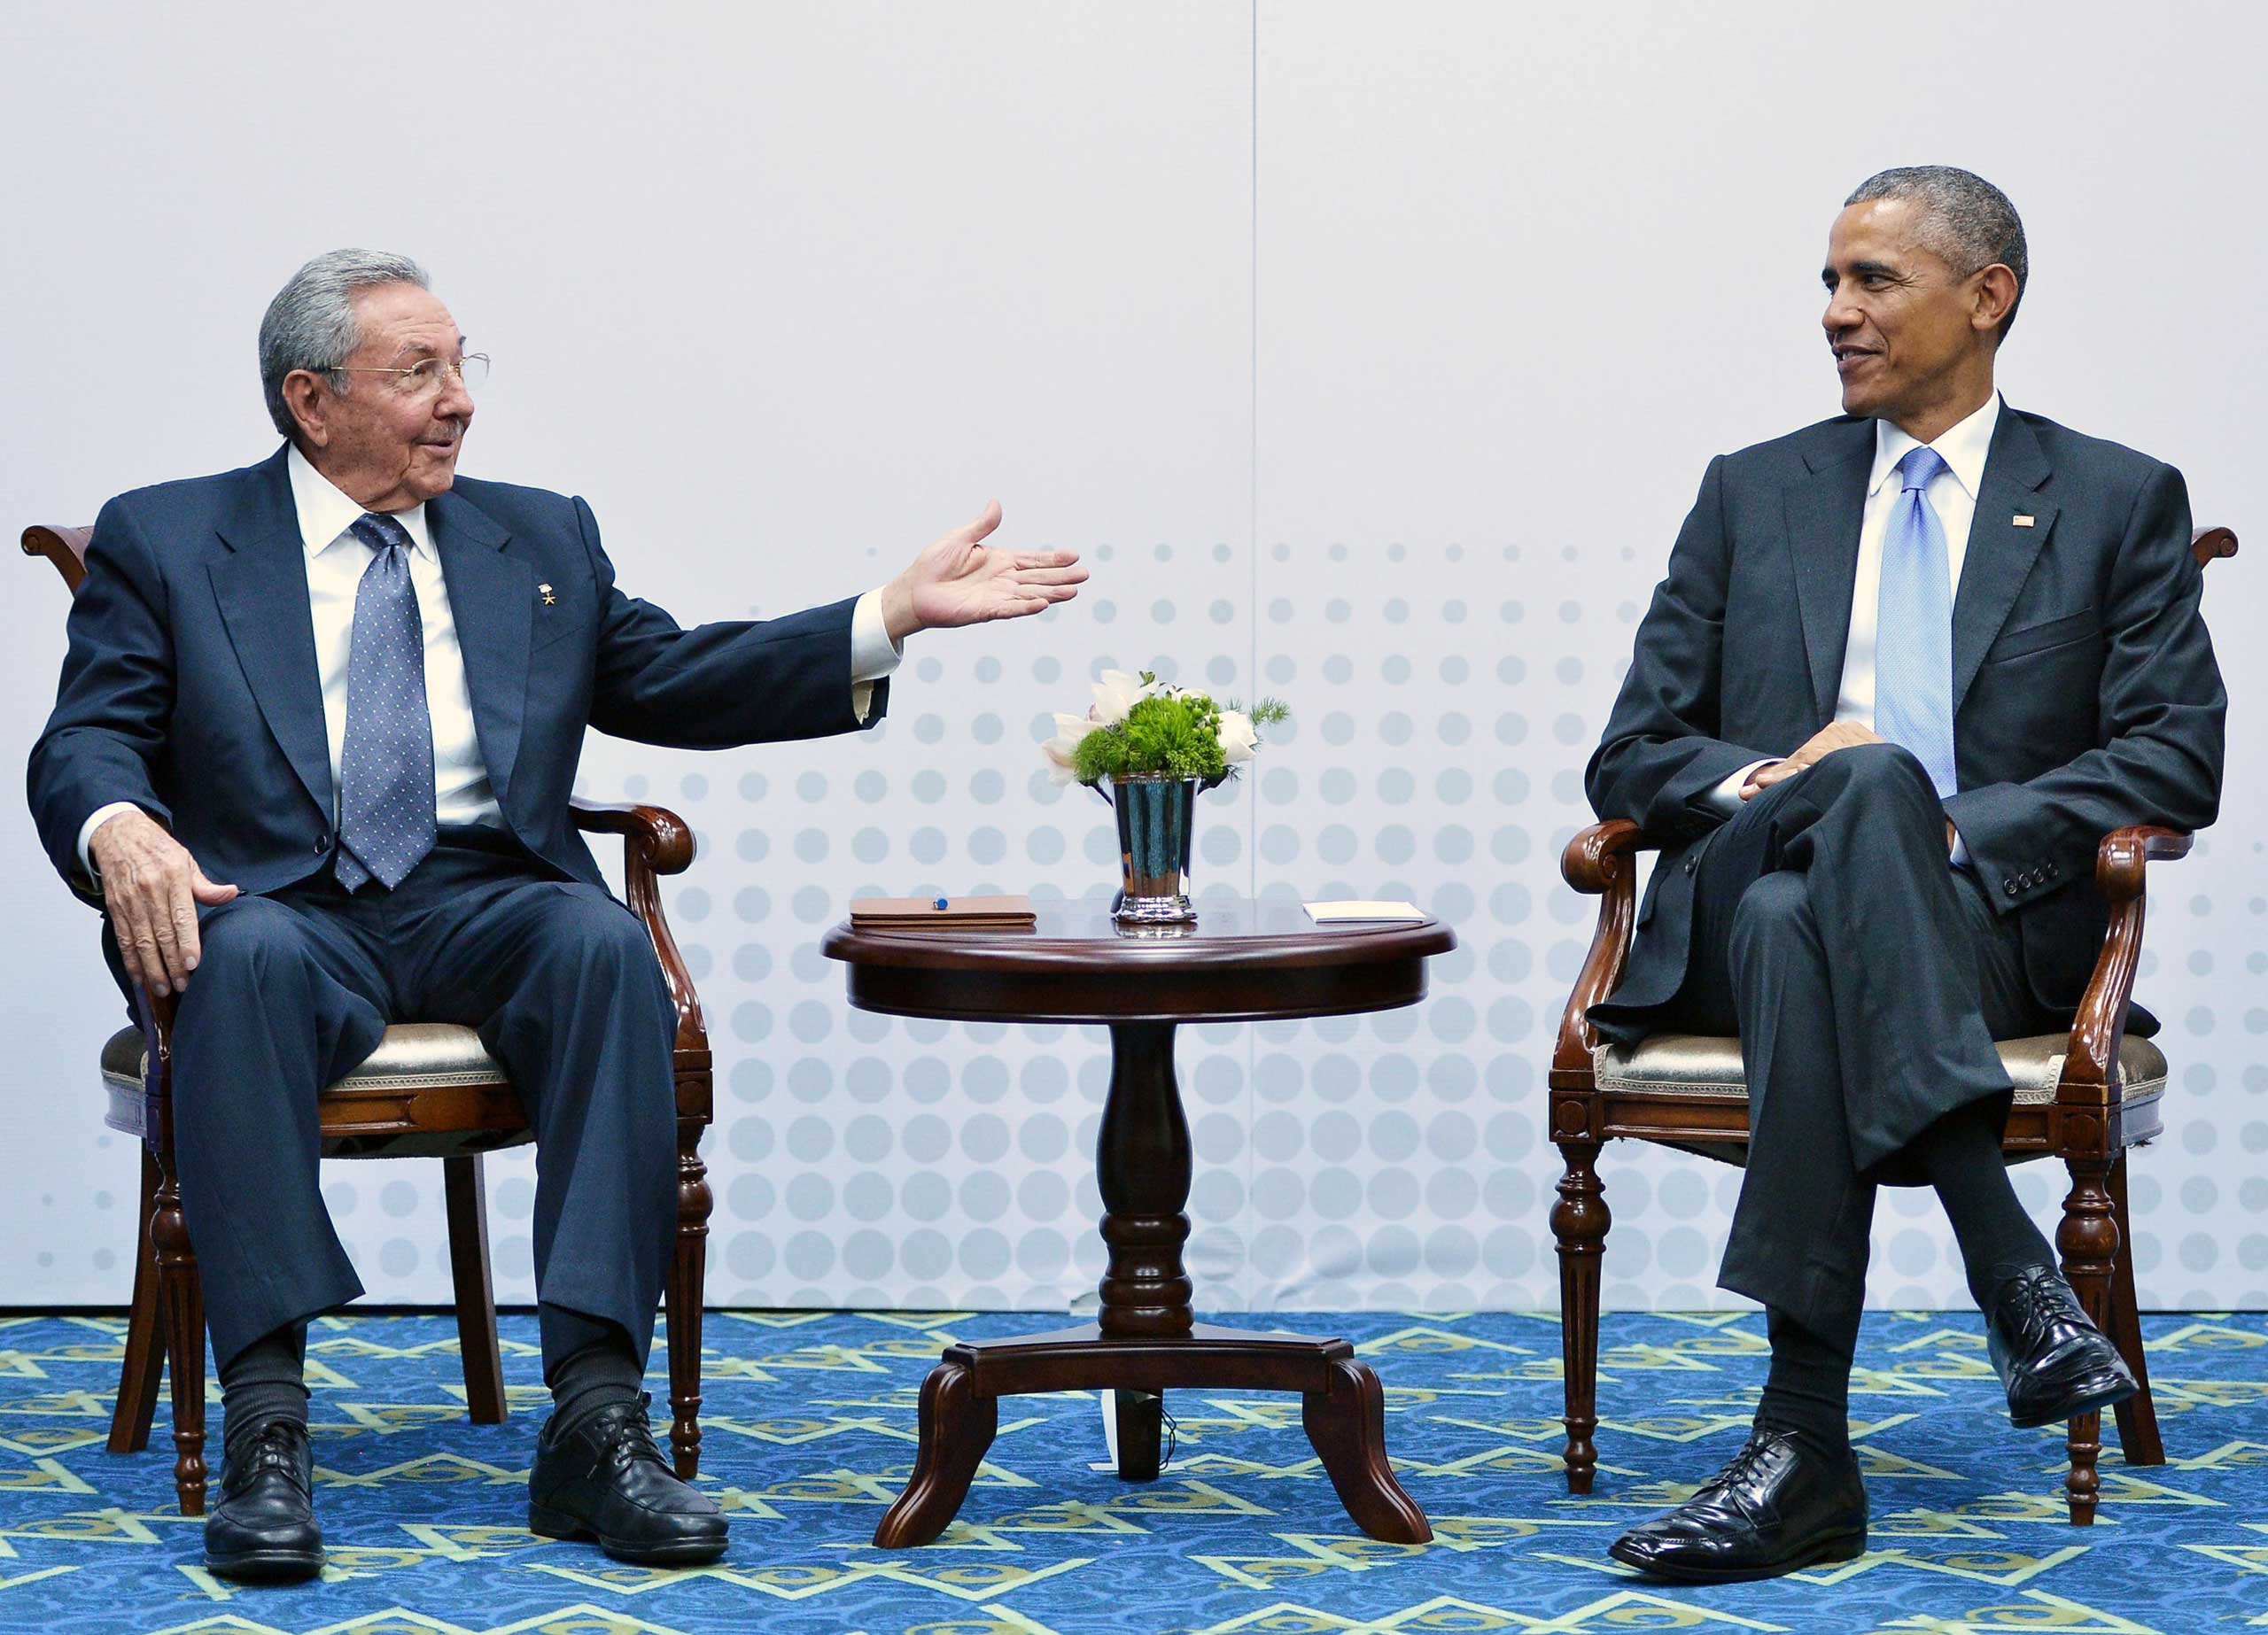 Cuban President Raul Castro speaks during a meeting with President Barack Obama on the sidelines of the Summit of the Americas at the ATLAPA Convention center in Panama City, on April 11, 2015.